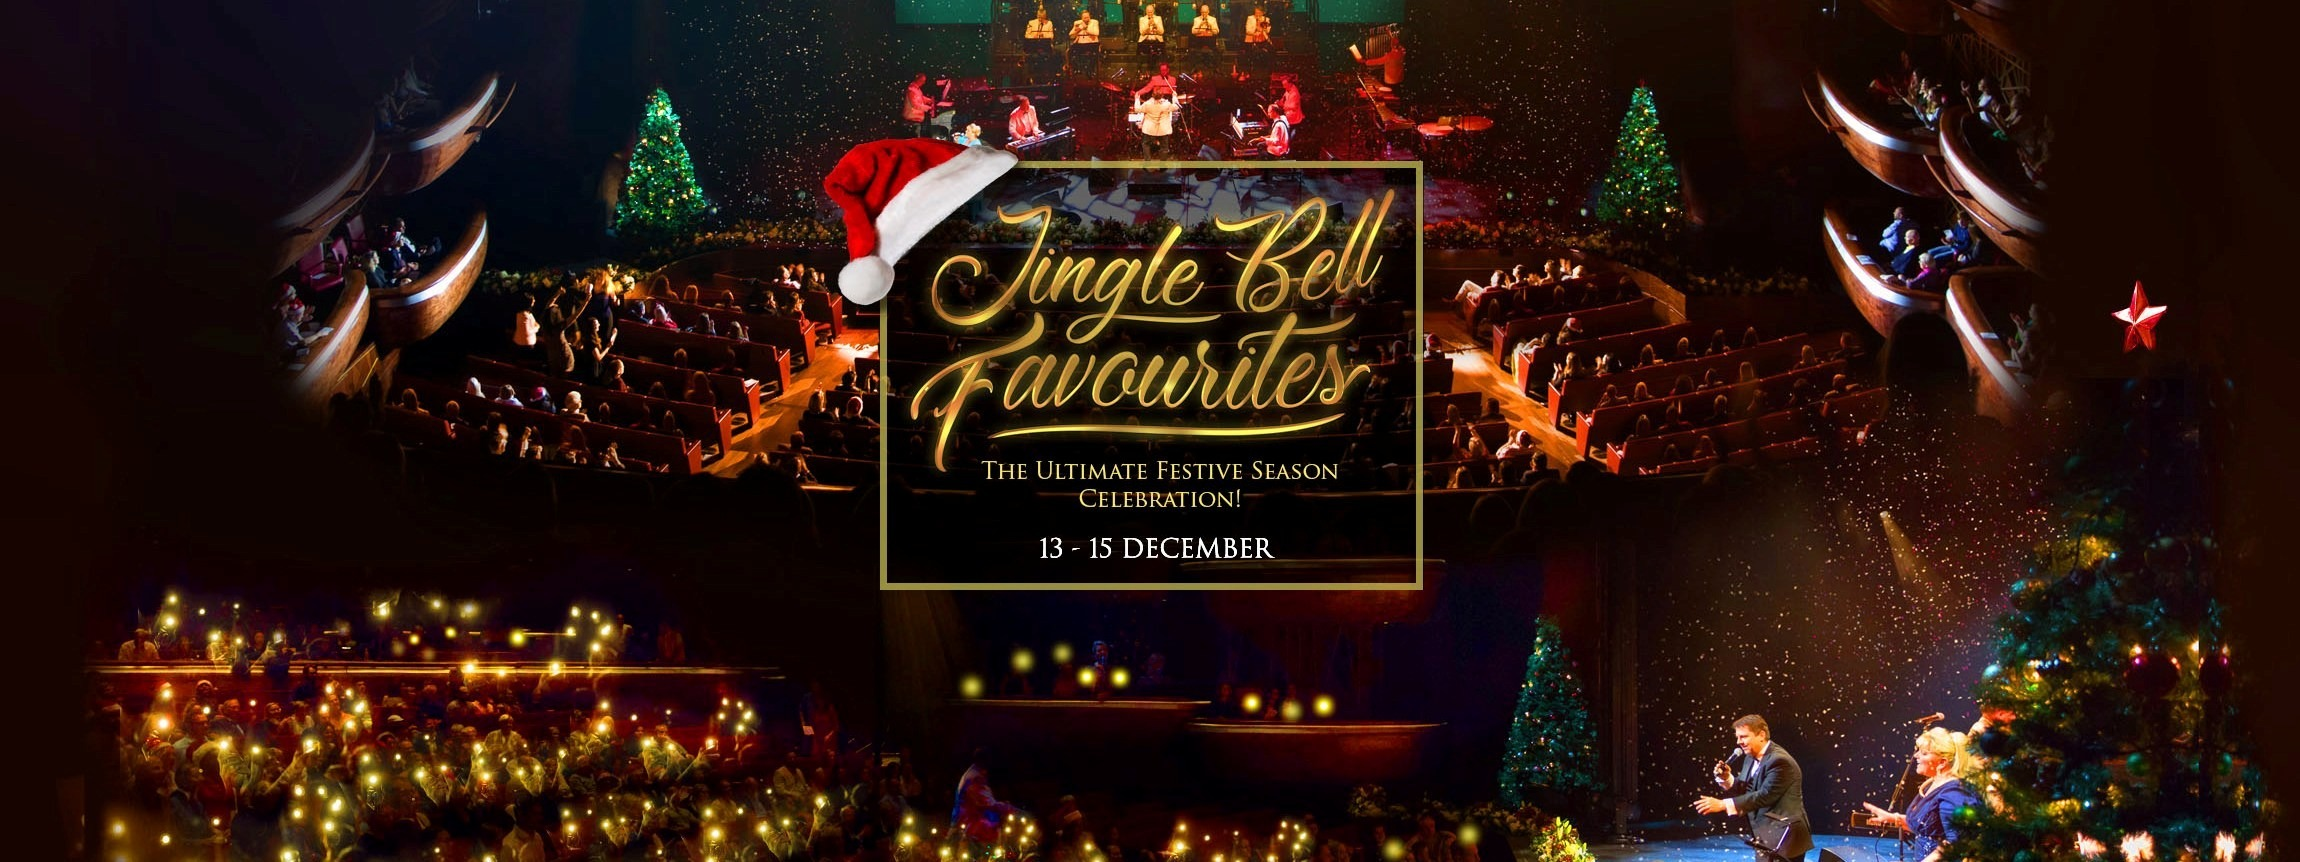 Jingle Bell Favourites - Coming Soon in UAE